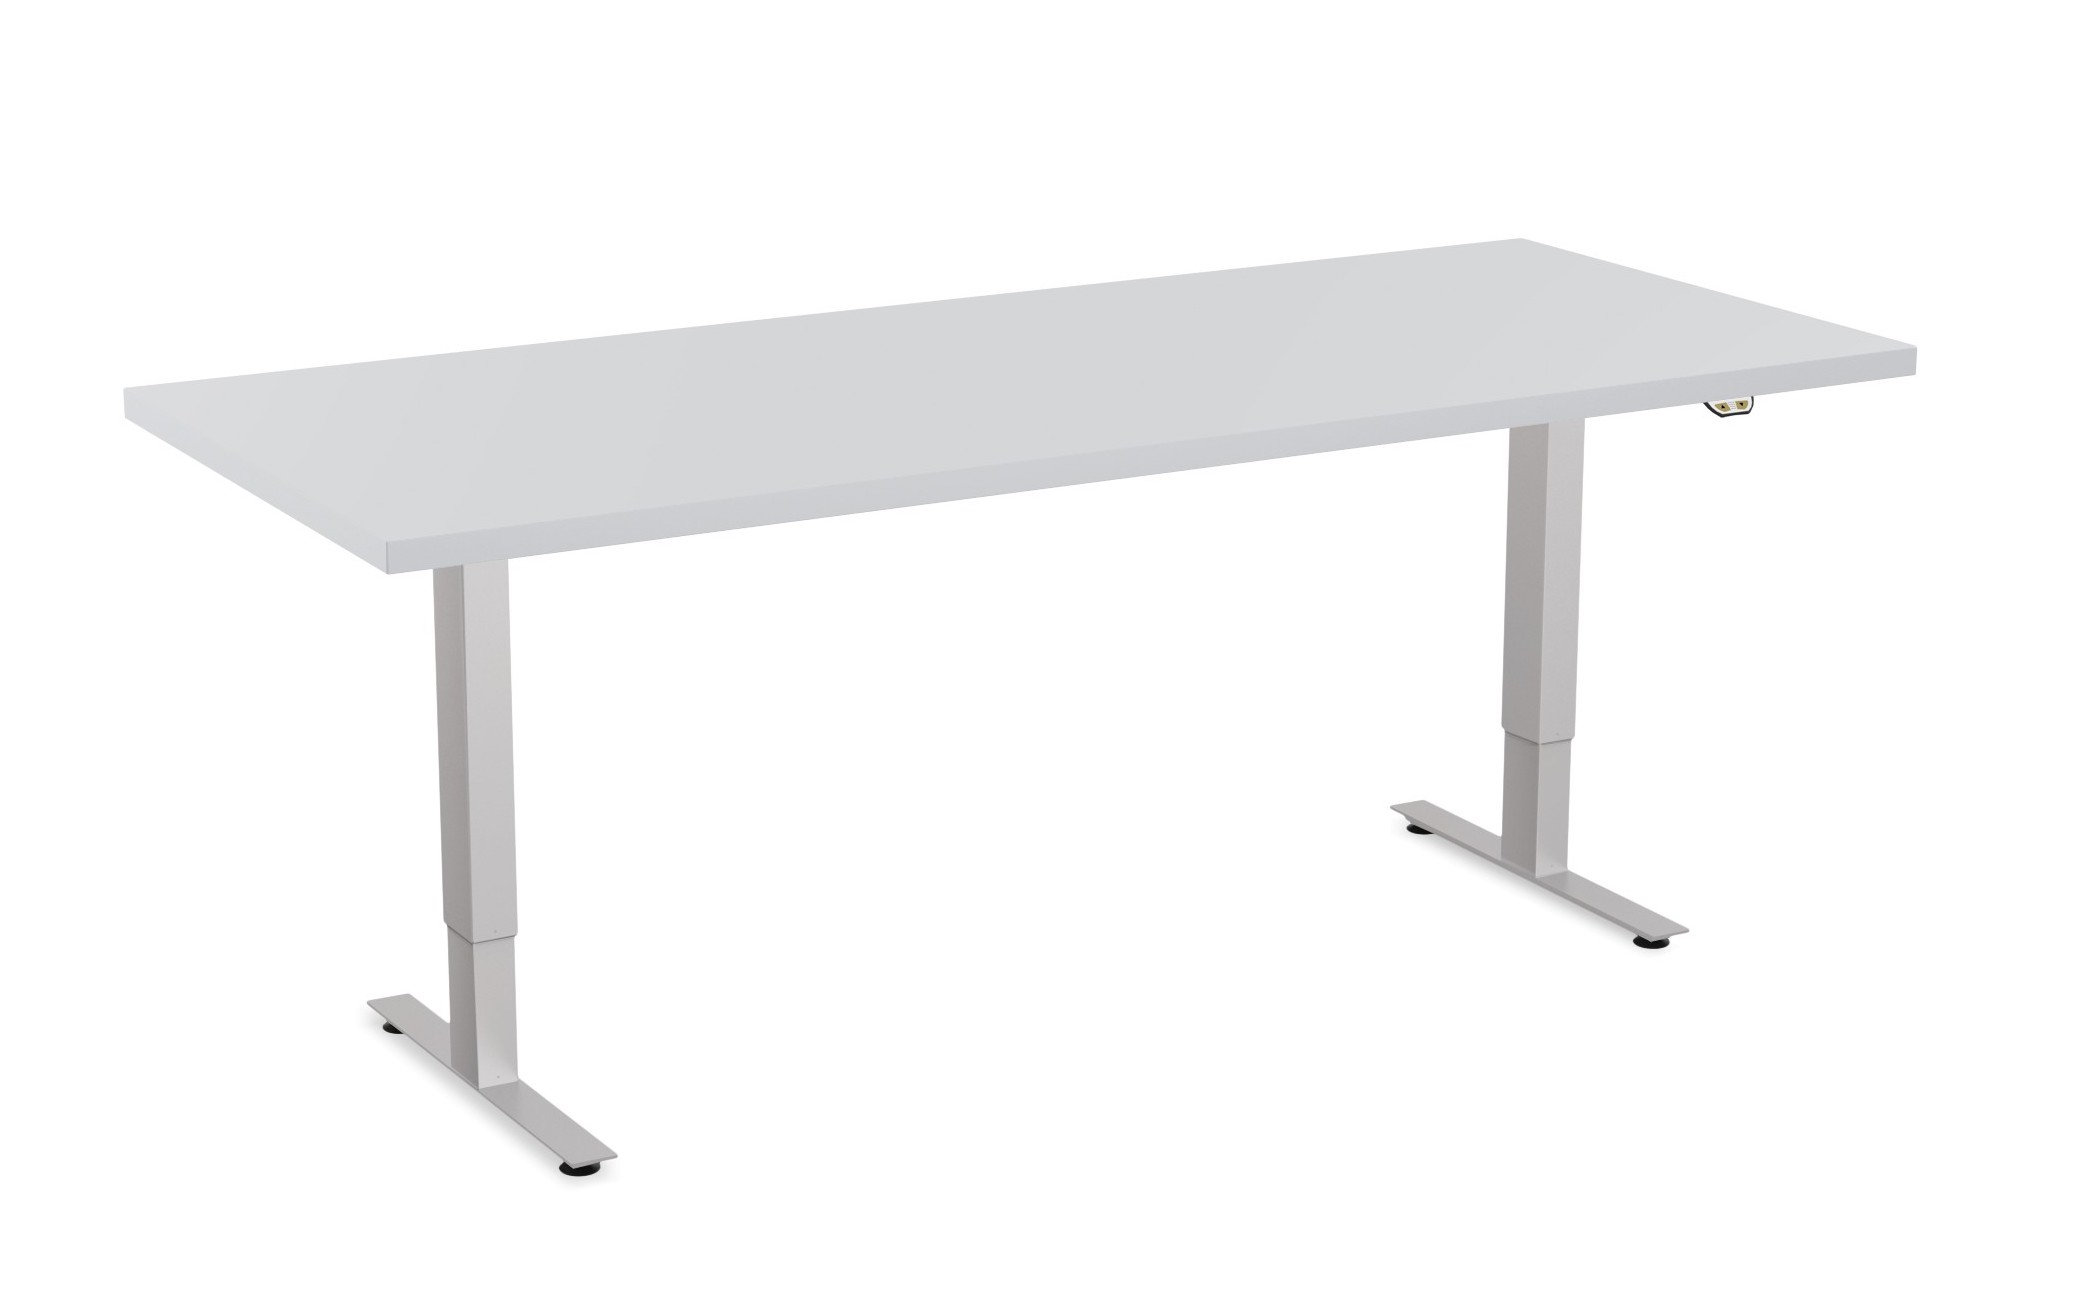 special-t patriot table in light grey